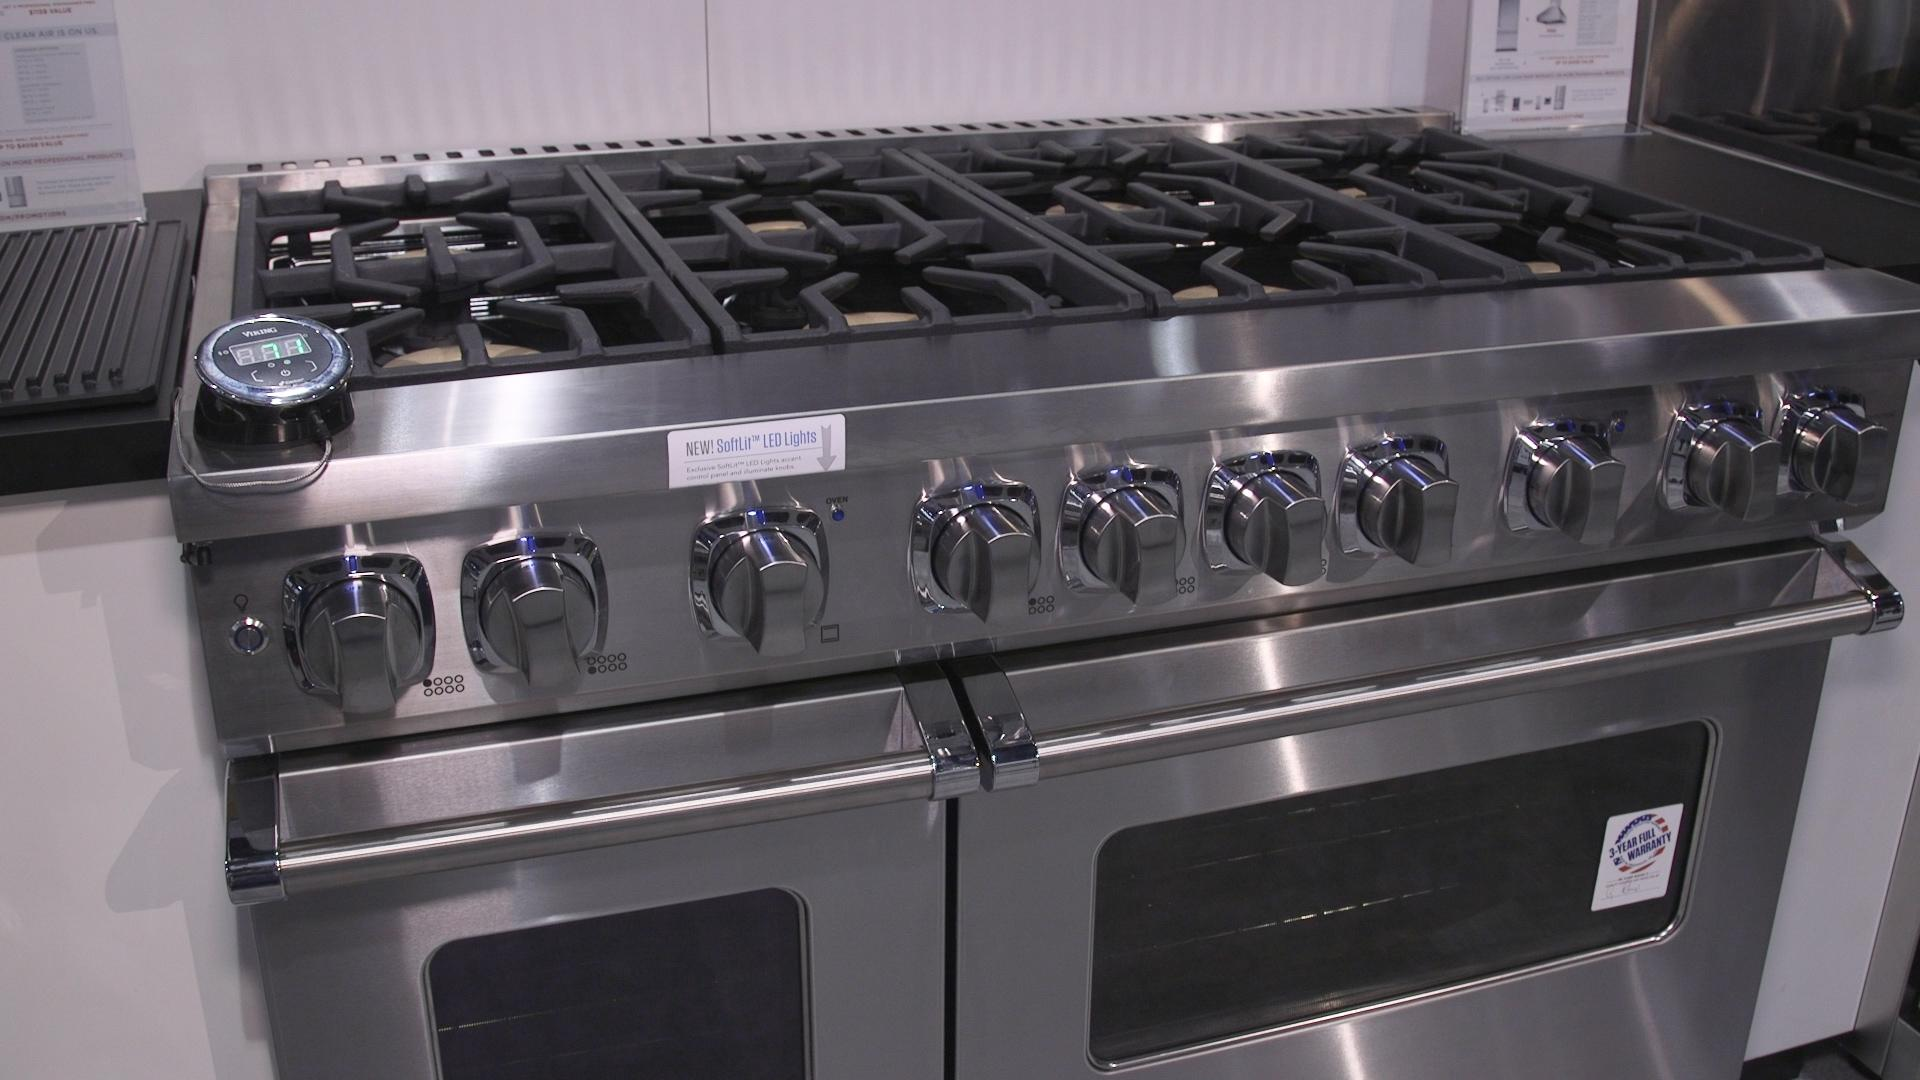 Top Brand Kitchen Appliances Best Range Buying Guide Consumer Reports